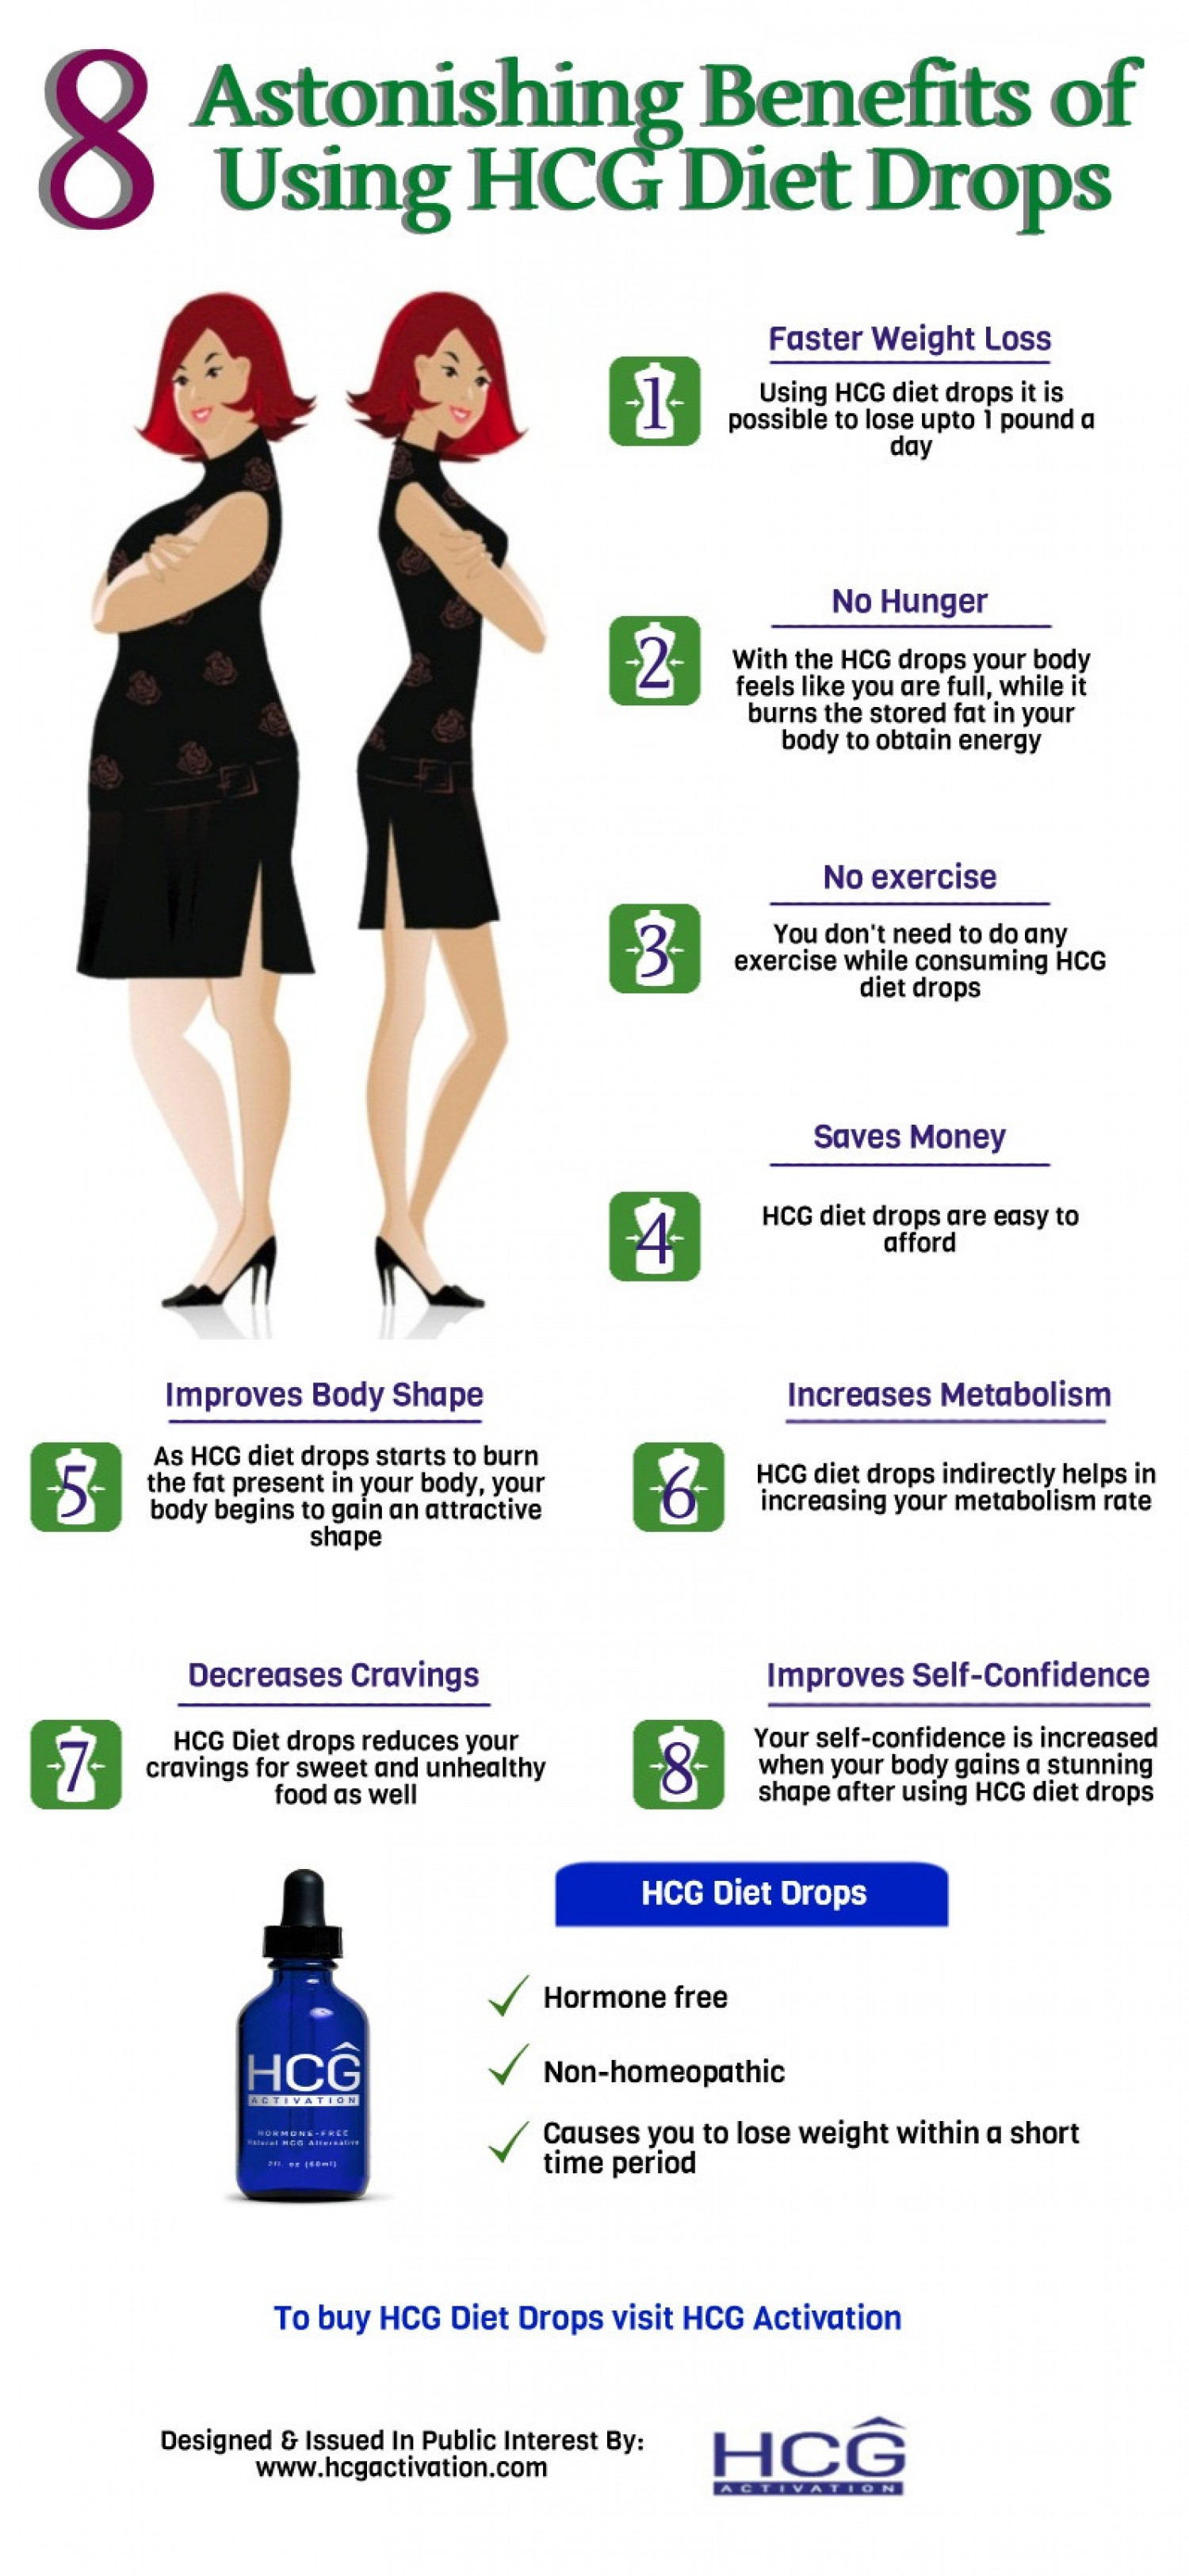 8 Astonishing Benefits of Using HCG Diet Drops Infographic